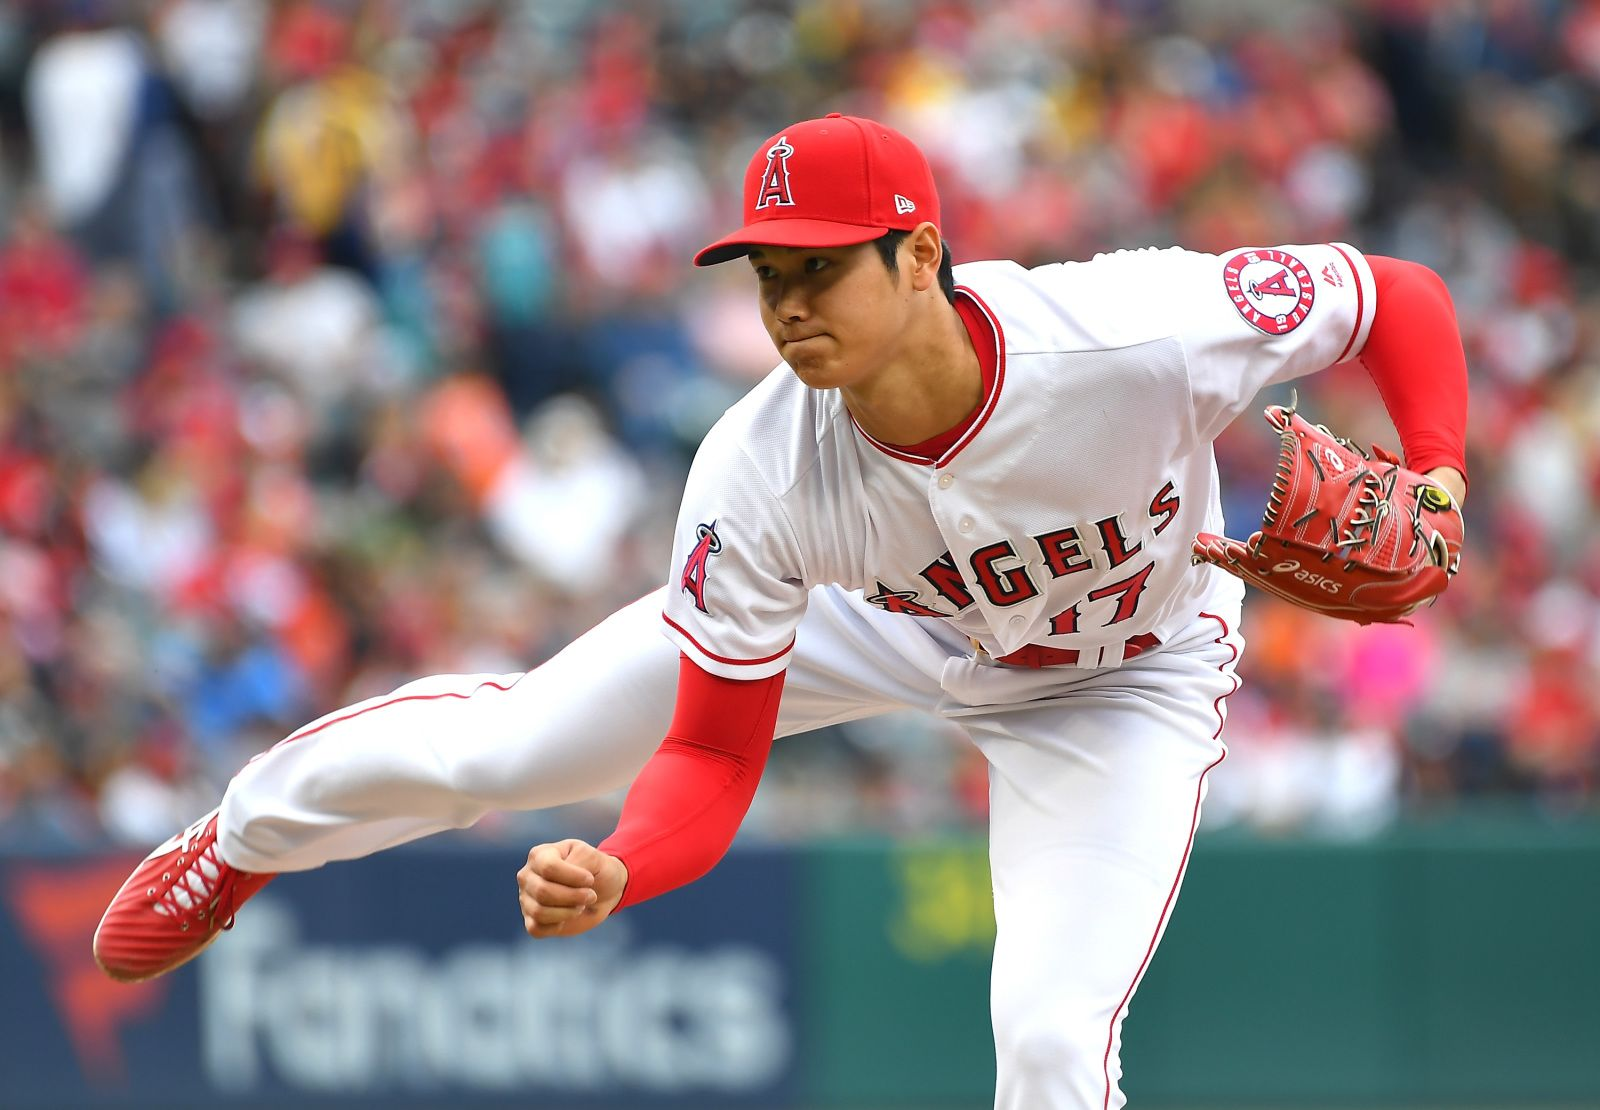 Shohei Ohtani won't pitch at Yankee Stadium as Angels do what's best for them - https://t.co/2bYPaEPACU https://t.co/Hh79rhh6rE